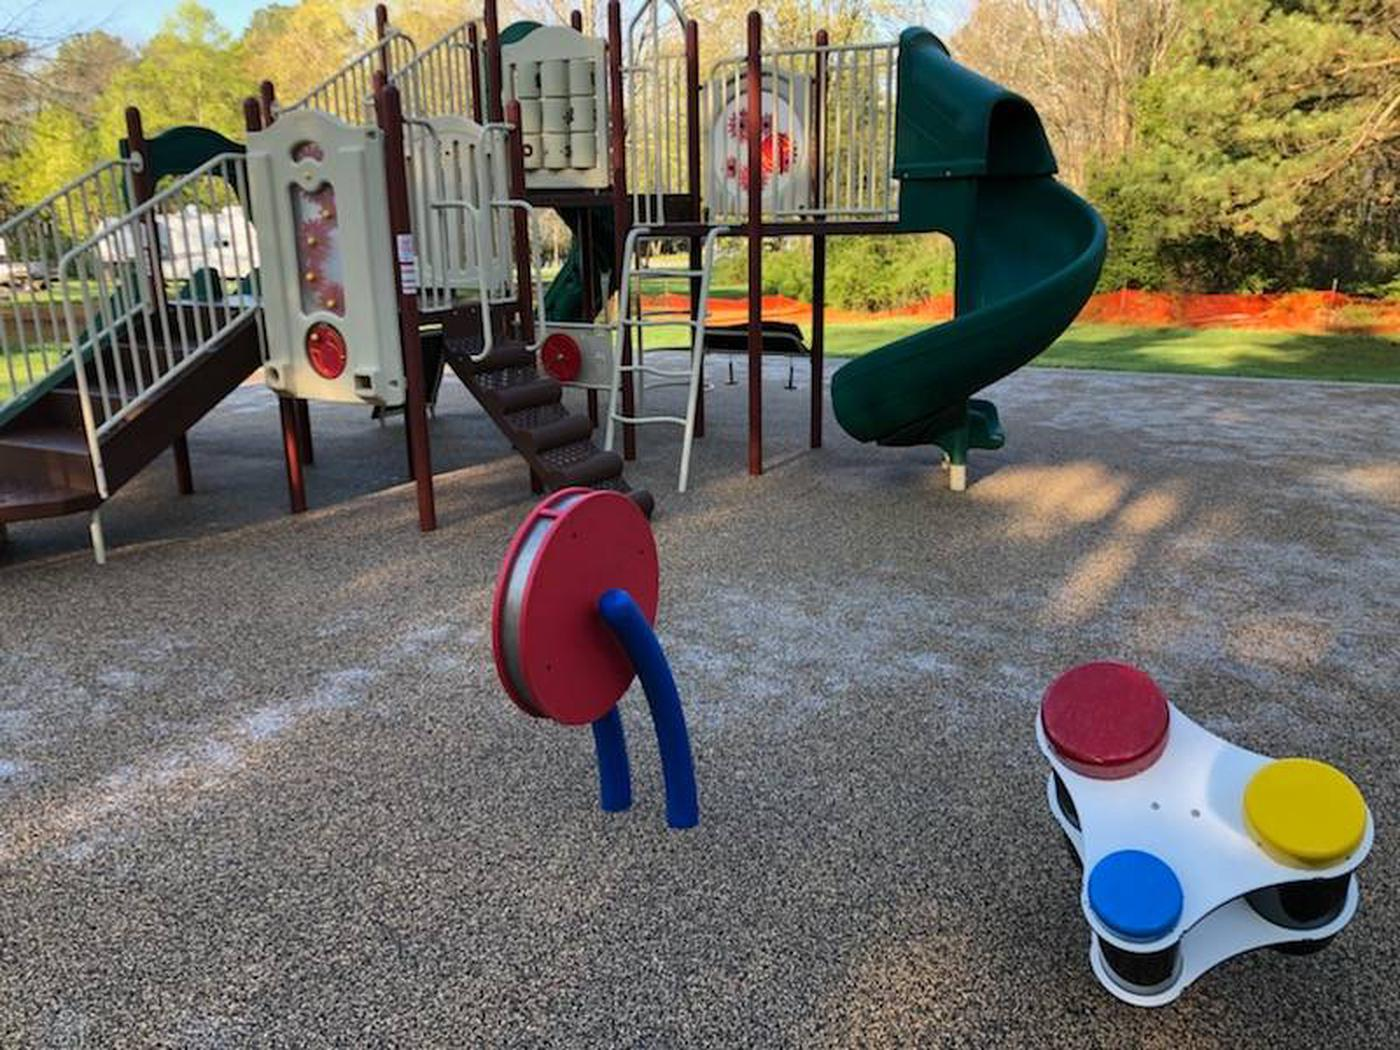 Playground Equipment located within Eagle Loop at Gun Creek Campground